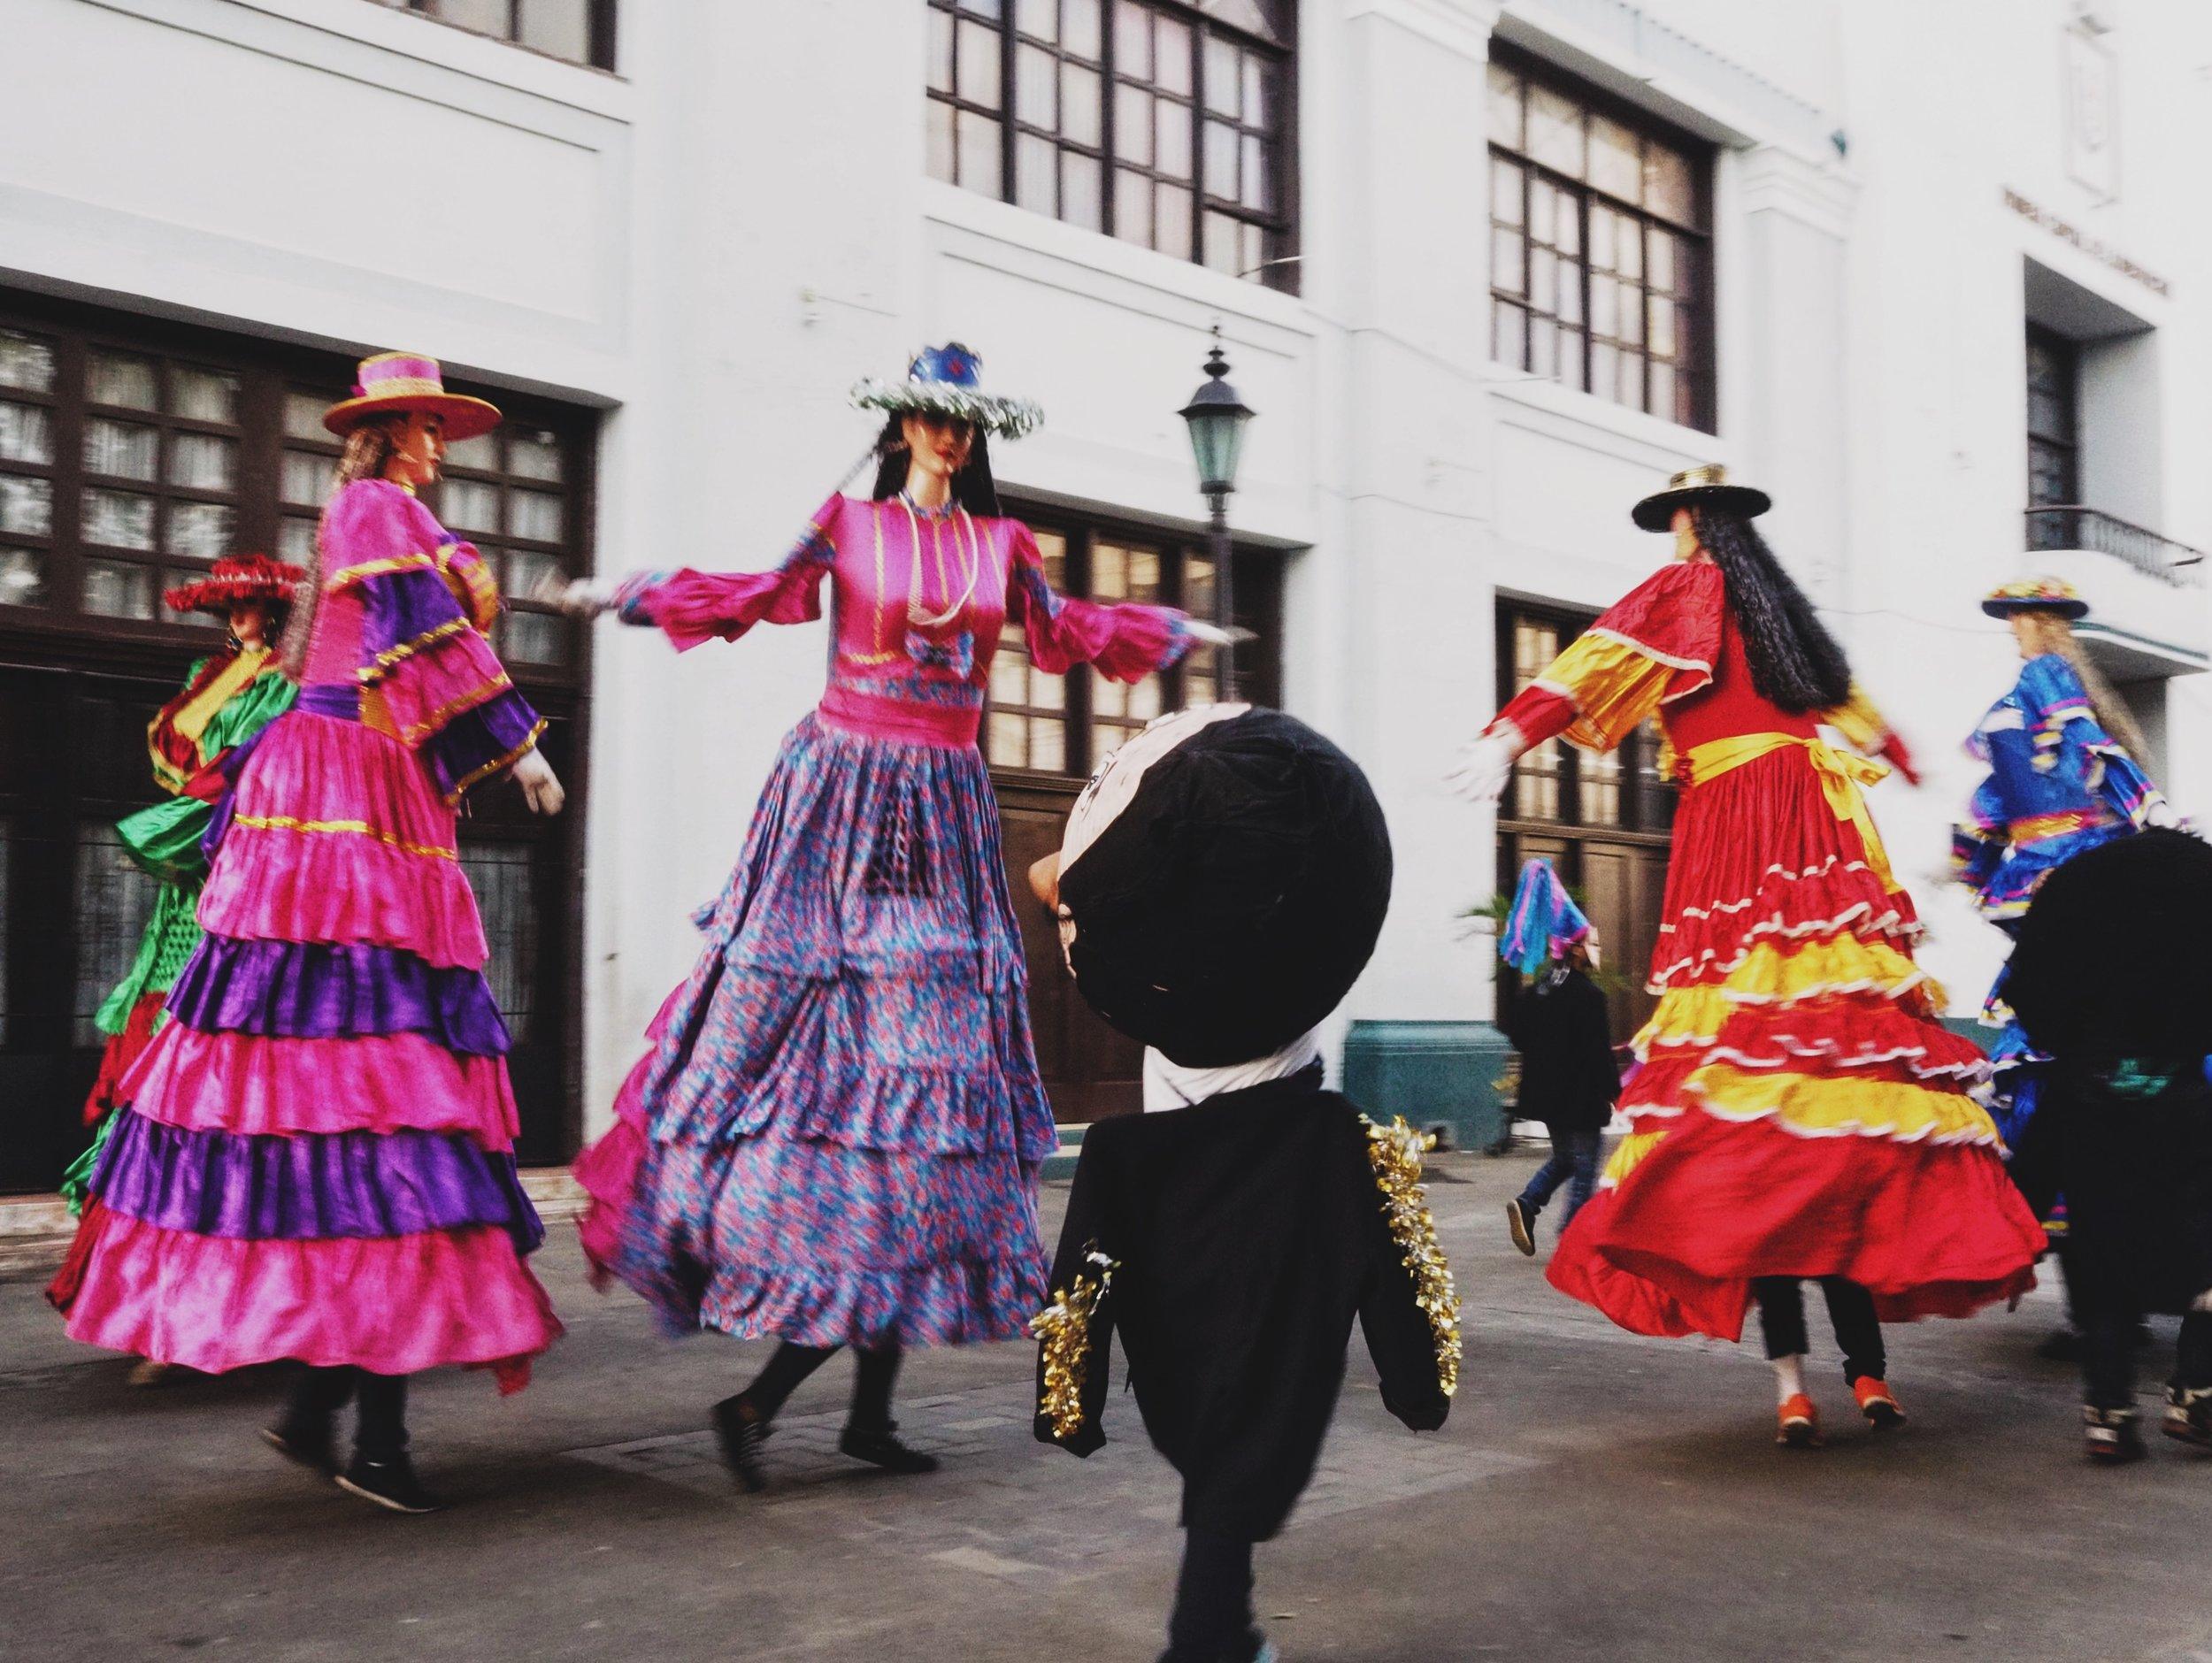 Some of the many cultural festivities in León